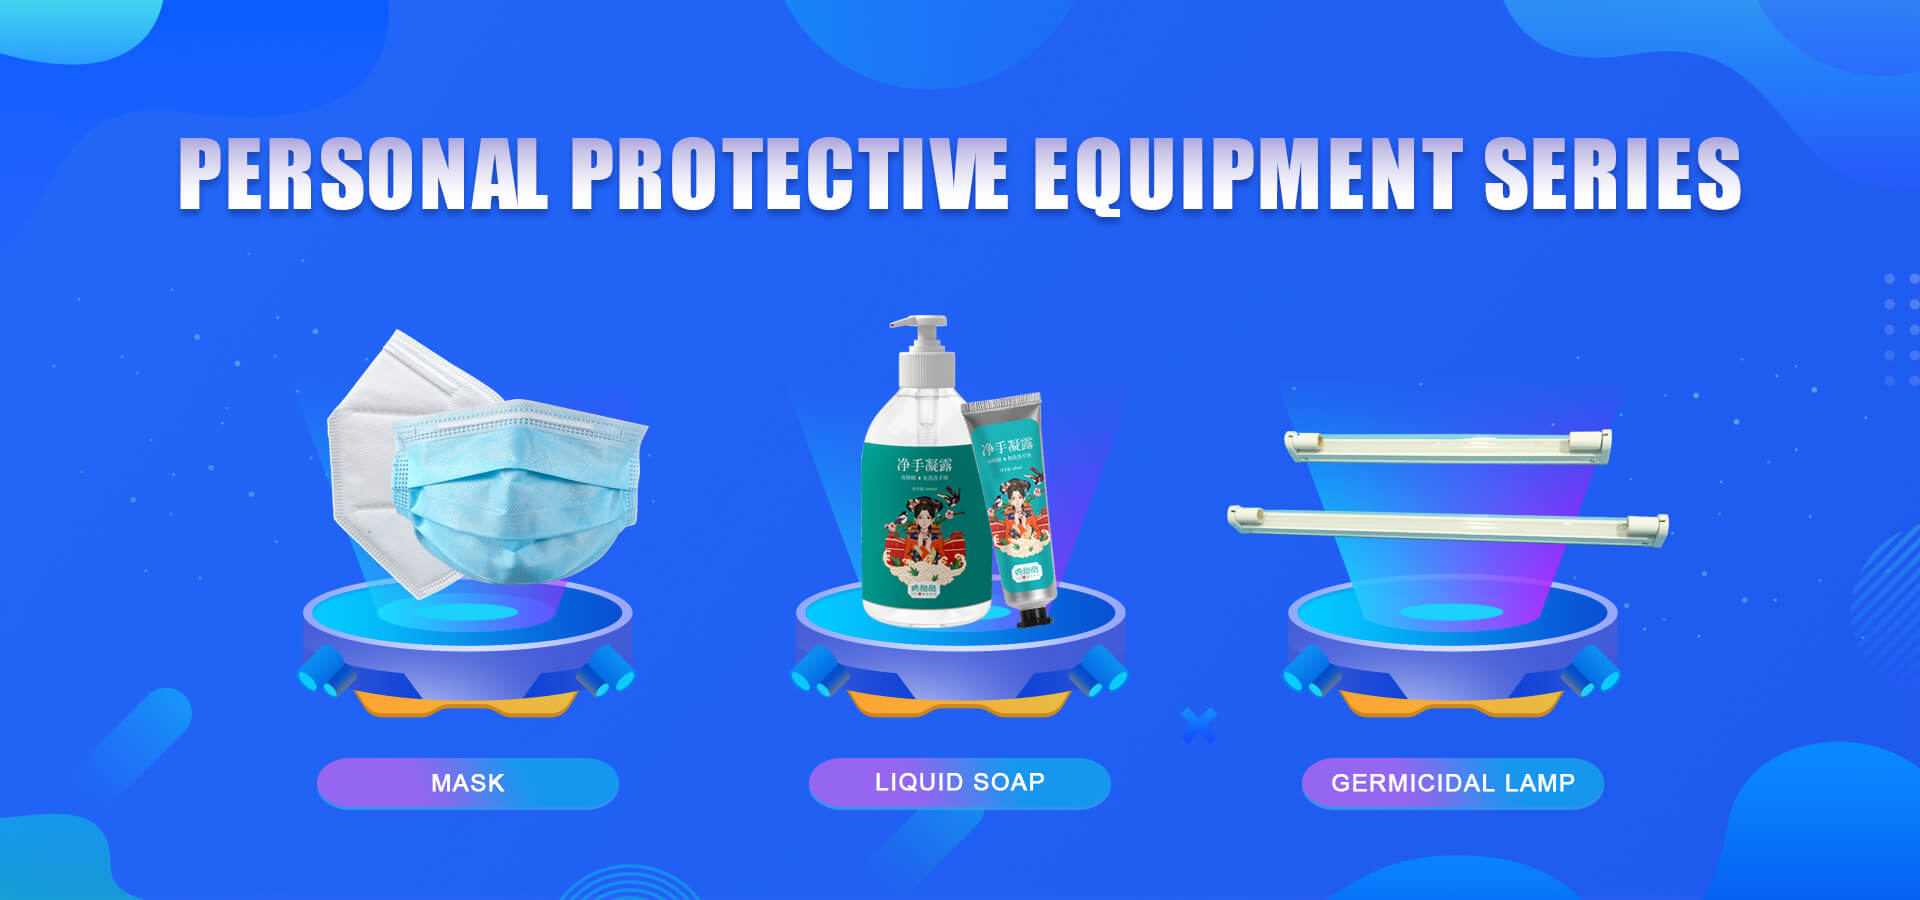 New Business of Civil Protective Equipment